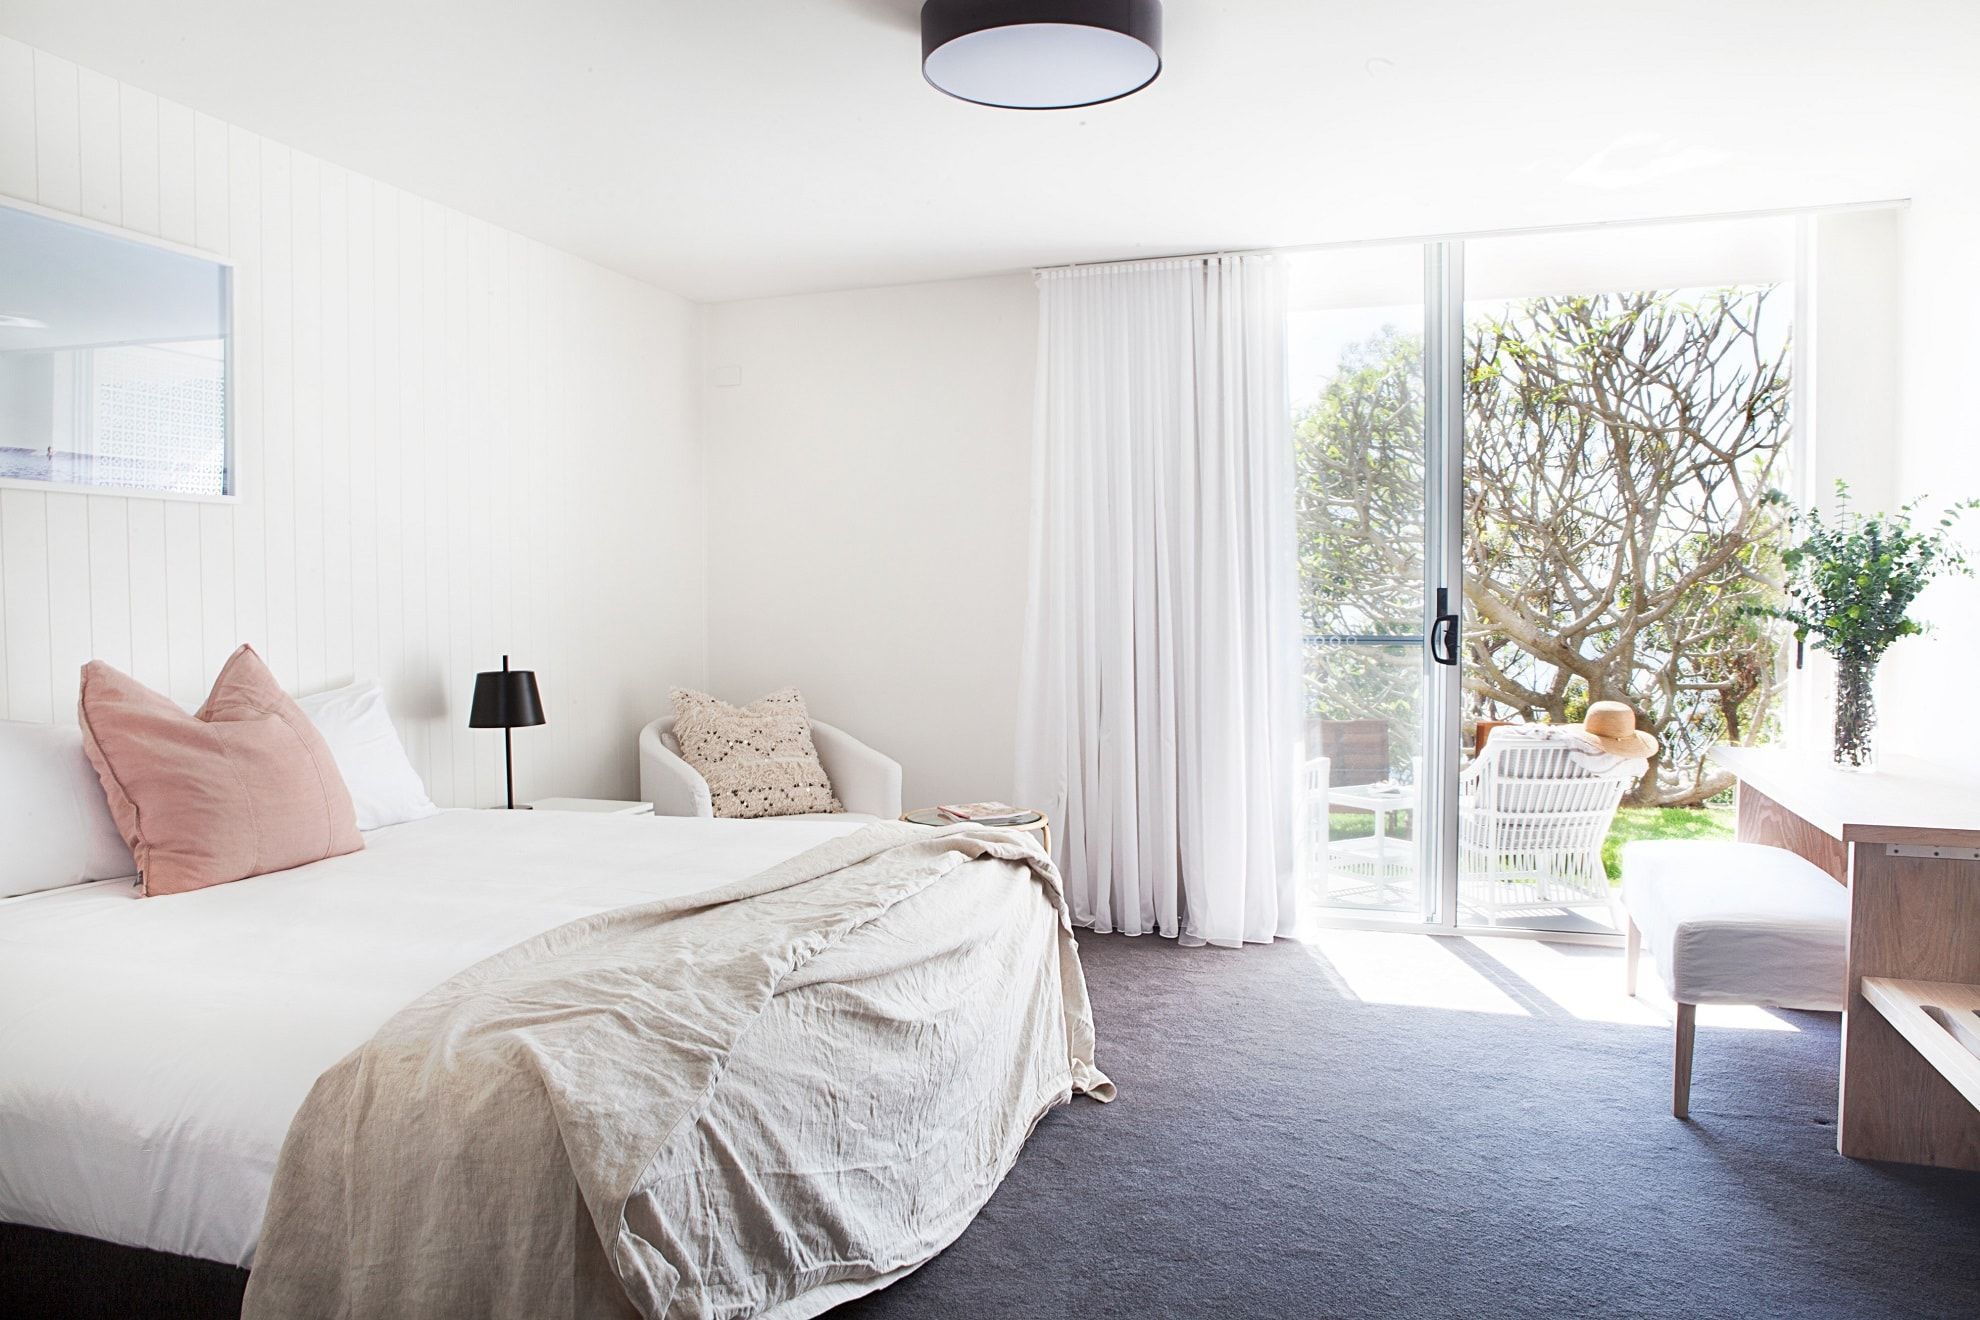 Ground-floor Hotel suite with views outside to garden